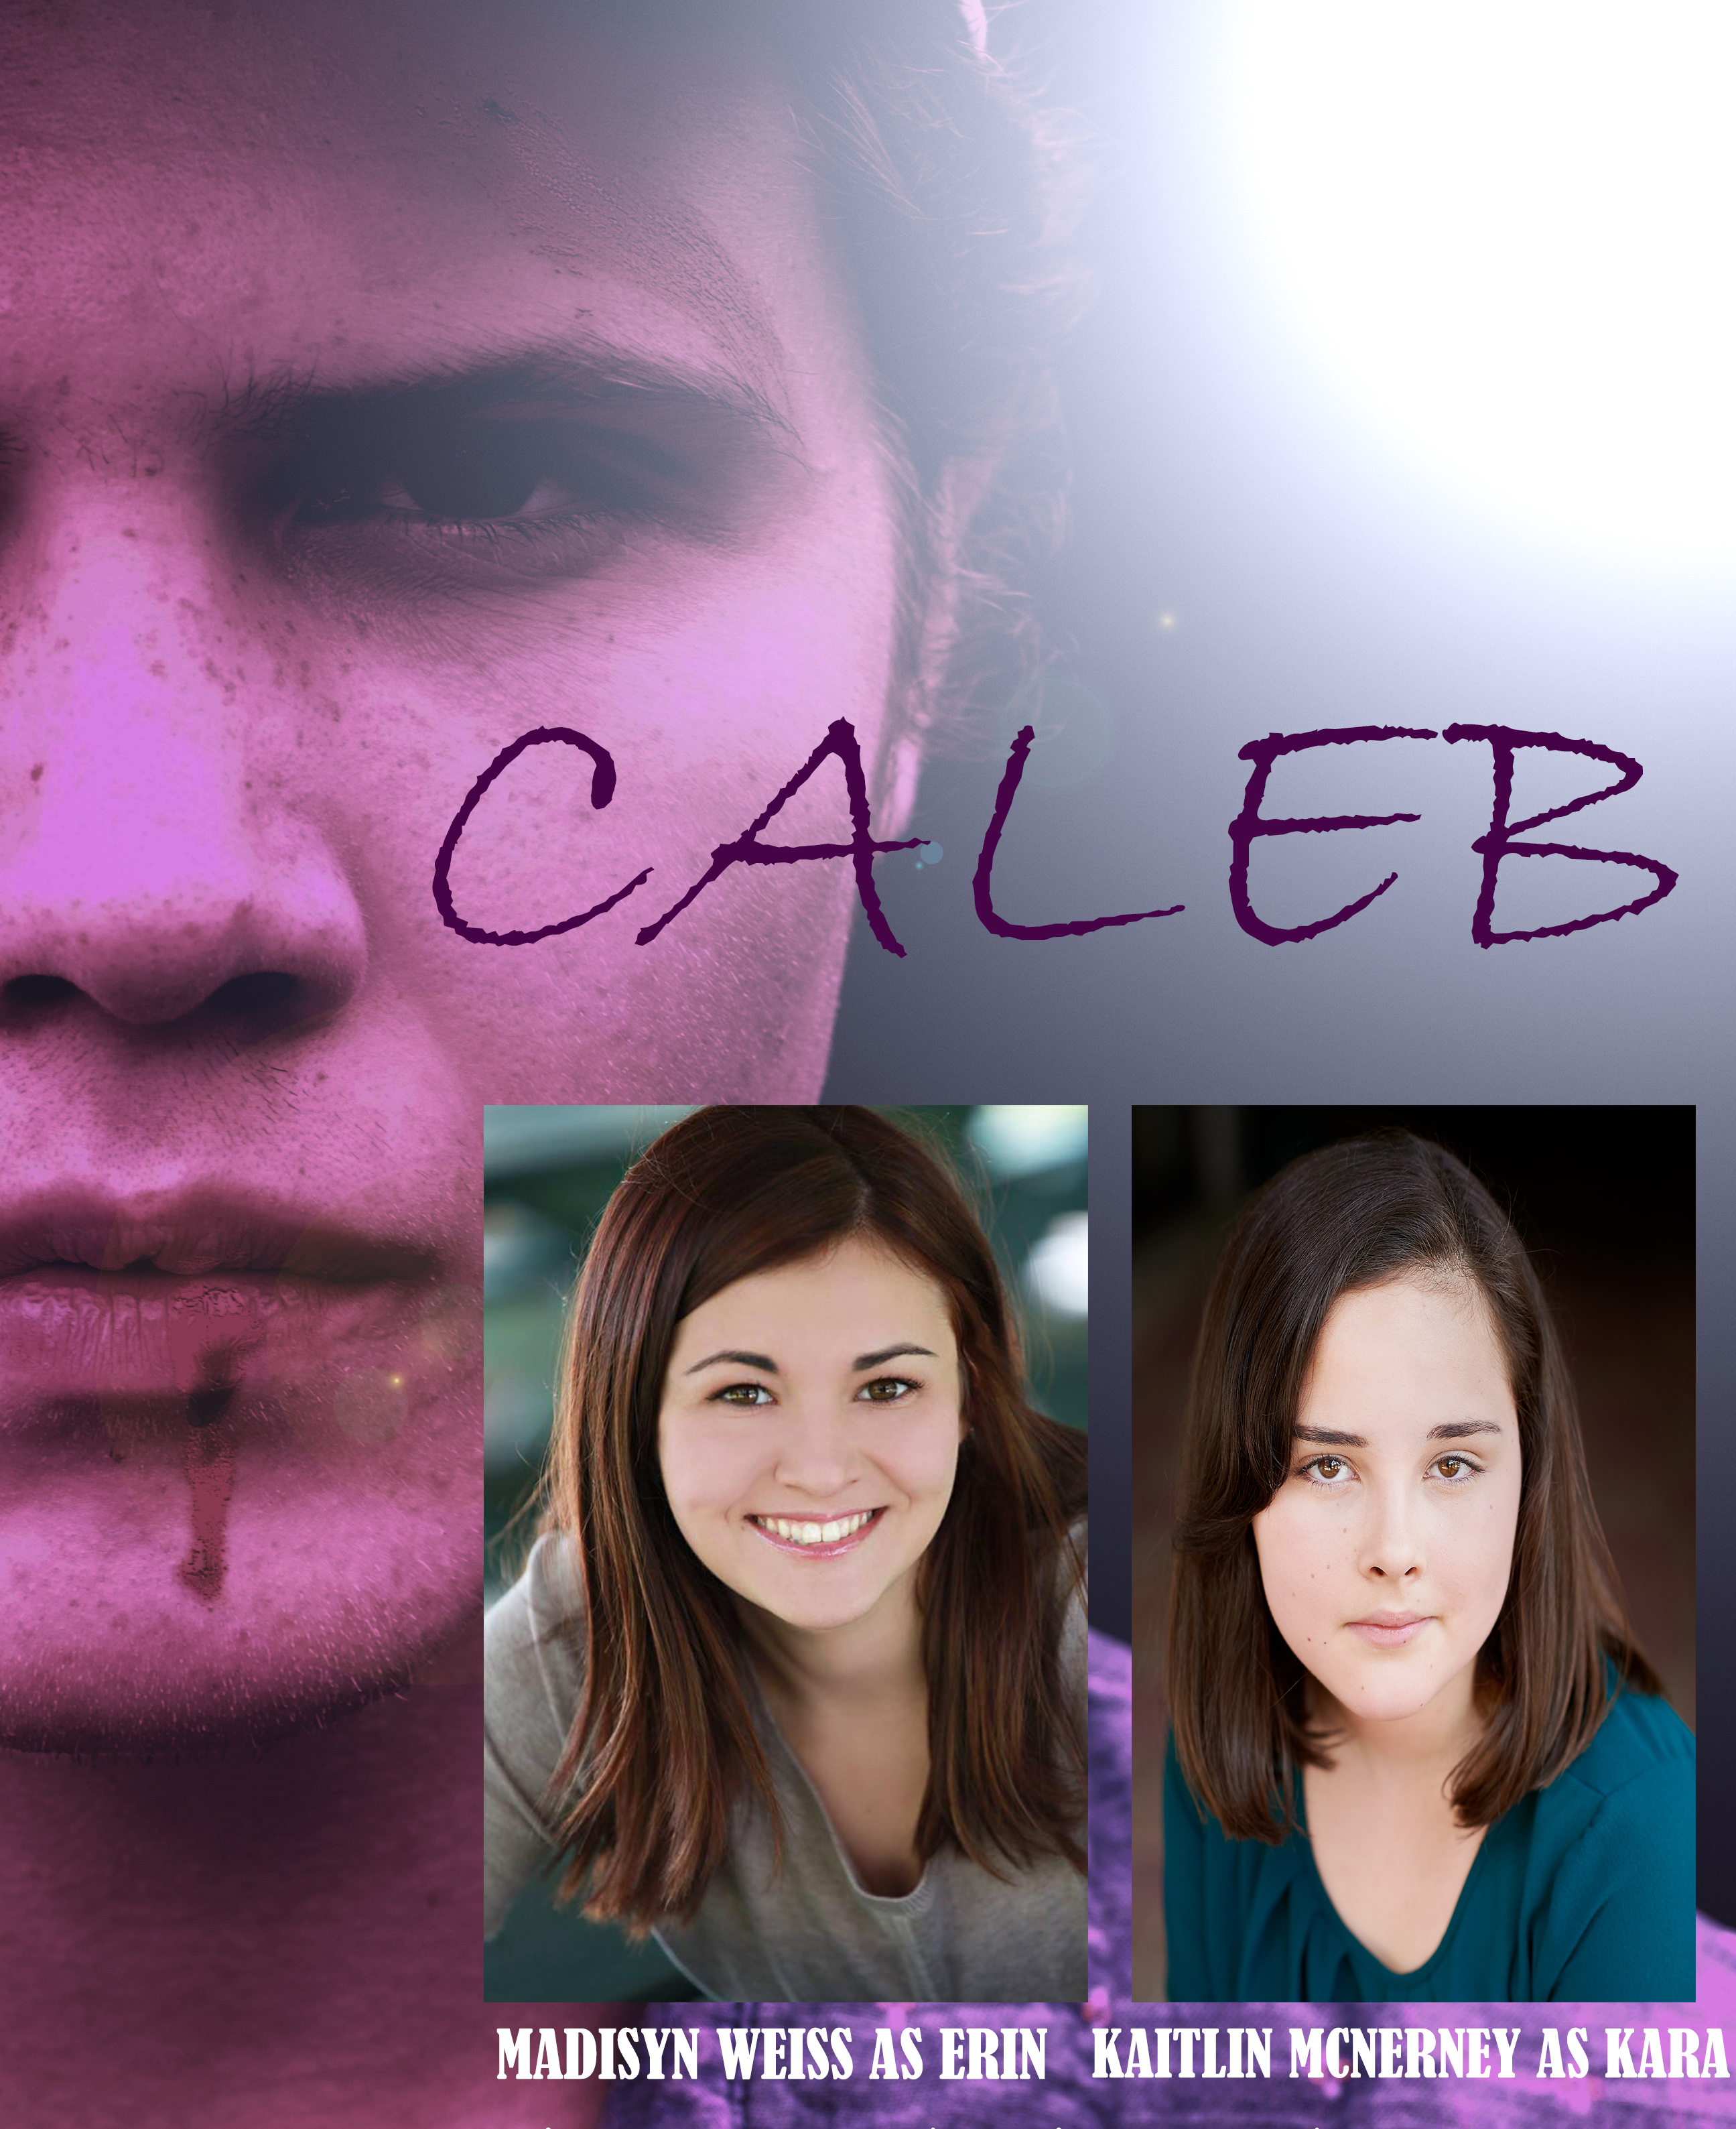 Kaitlin Mcnerney and Madisyn Weiss in Caleb (2018)